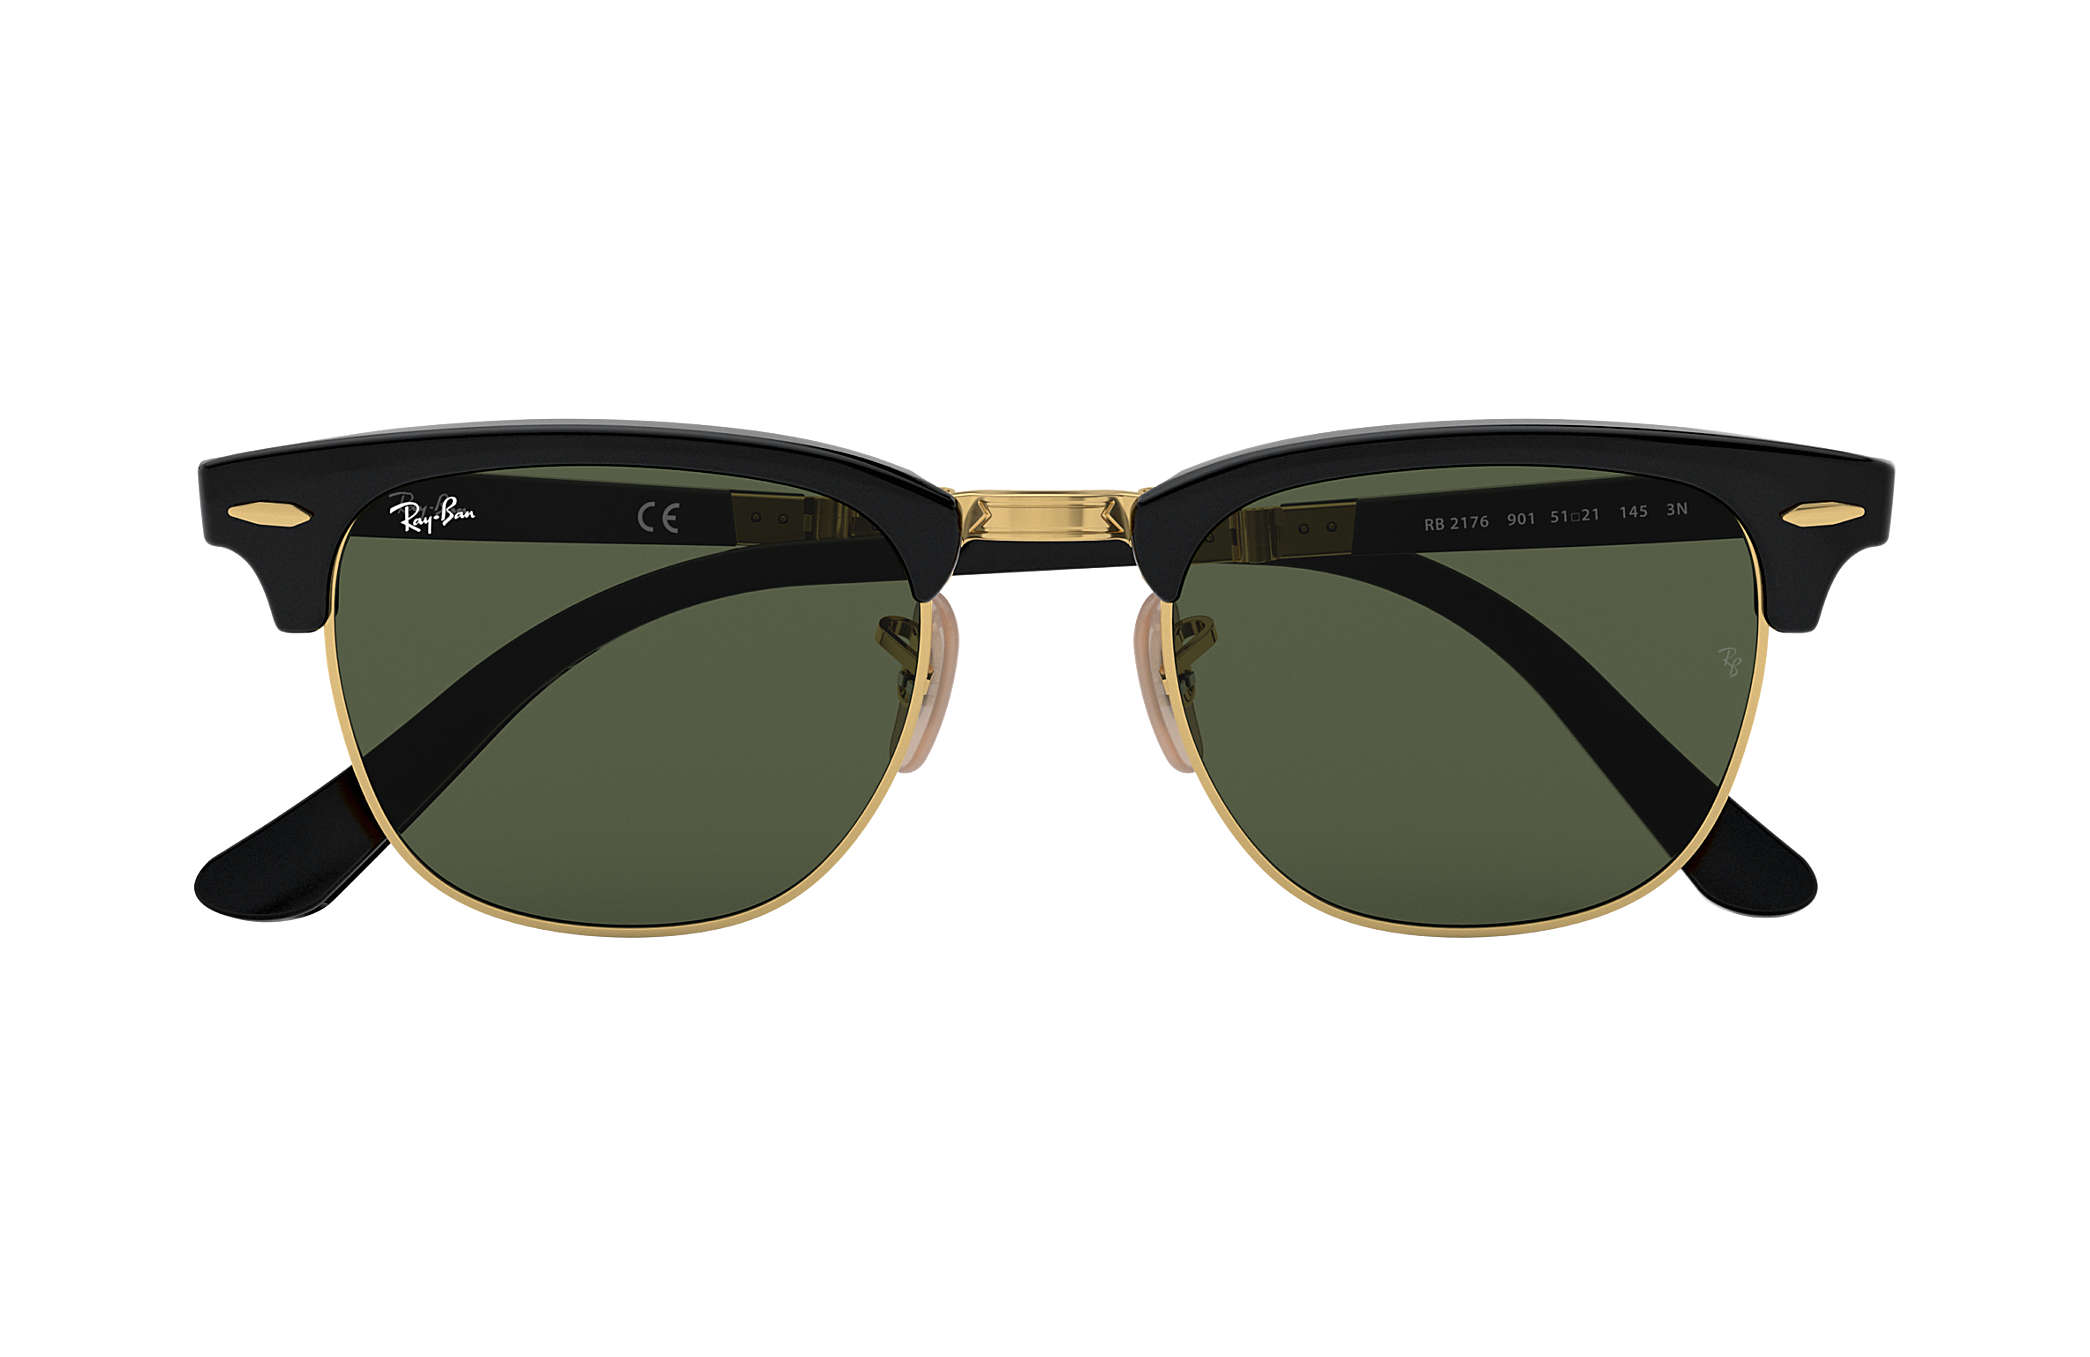 8d38a41cd Ray-Ban Clubmaster Folding RB2176 Black - Acetate - Green Lenses ...